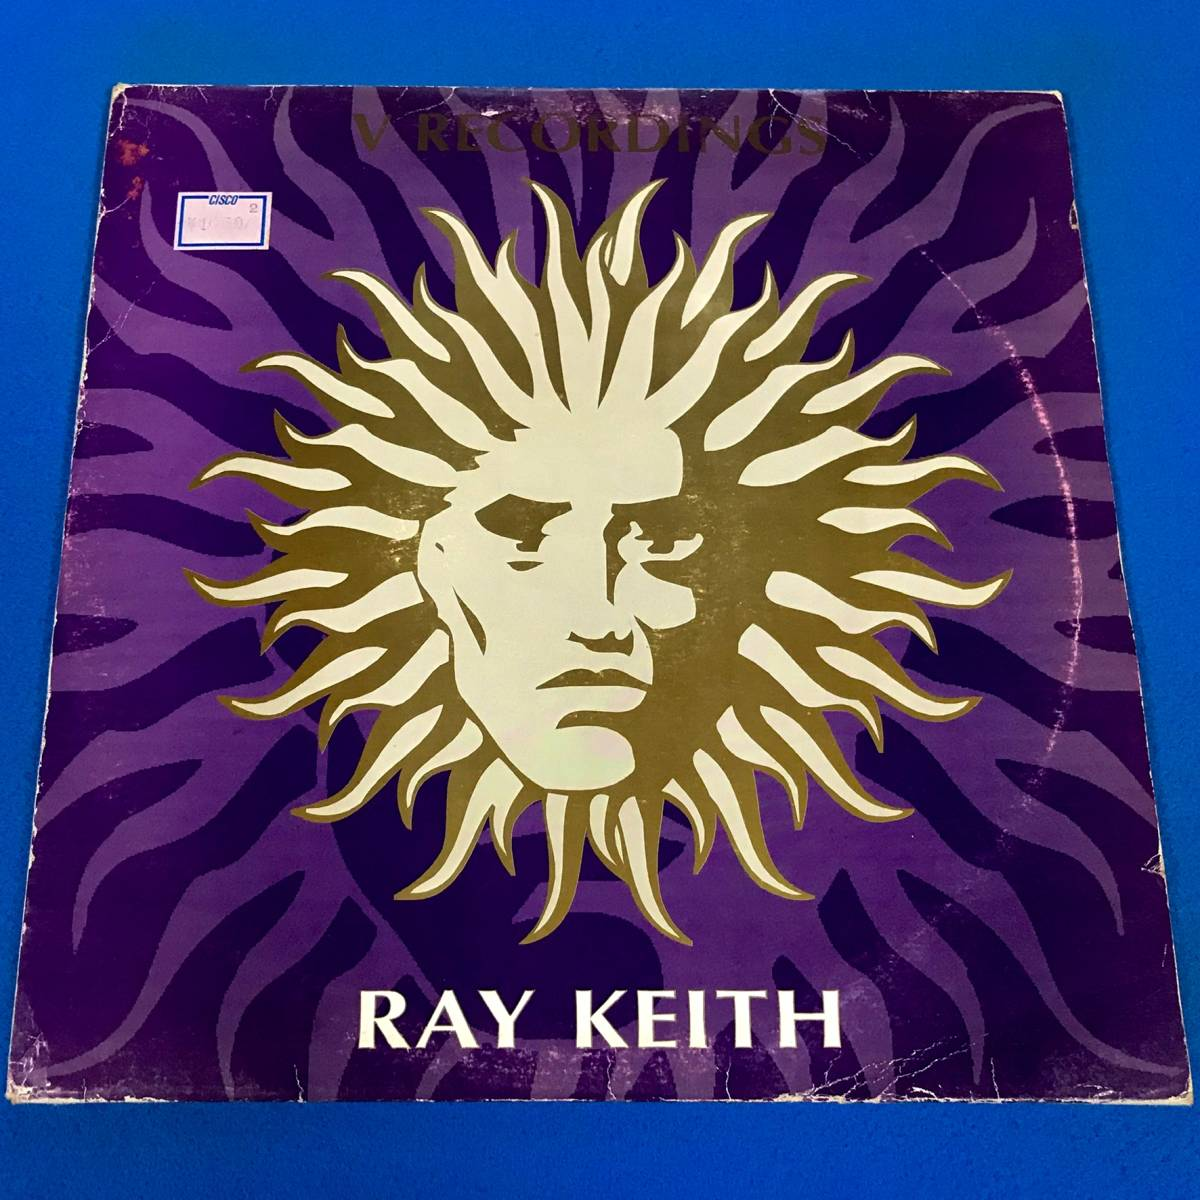 【DRUM N BASS】RAY KEITH//RAY KEITH EP//V RECORDINGS//2x12INCH VINYL/UK/DJ ZINC/GOLDIE/DJ MARKY_画像1